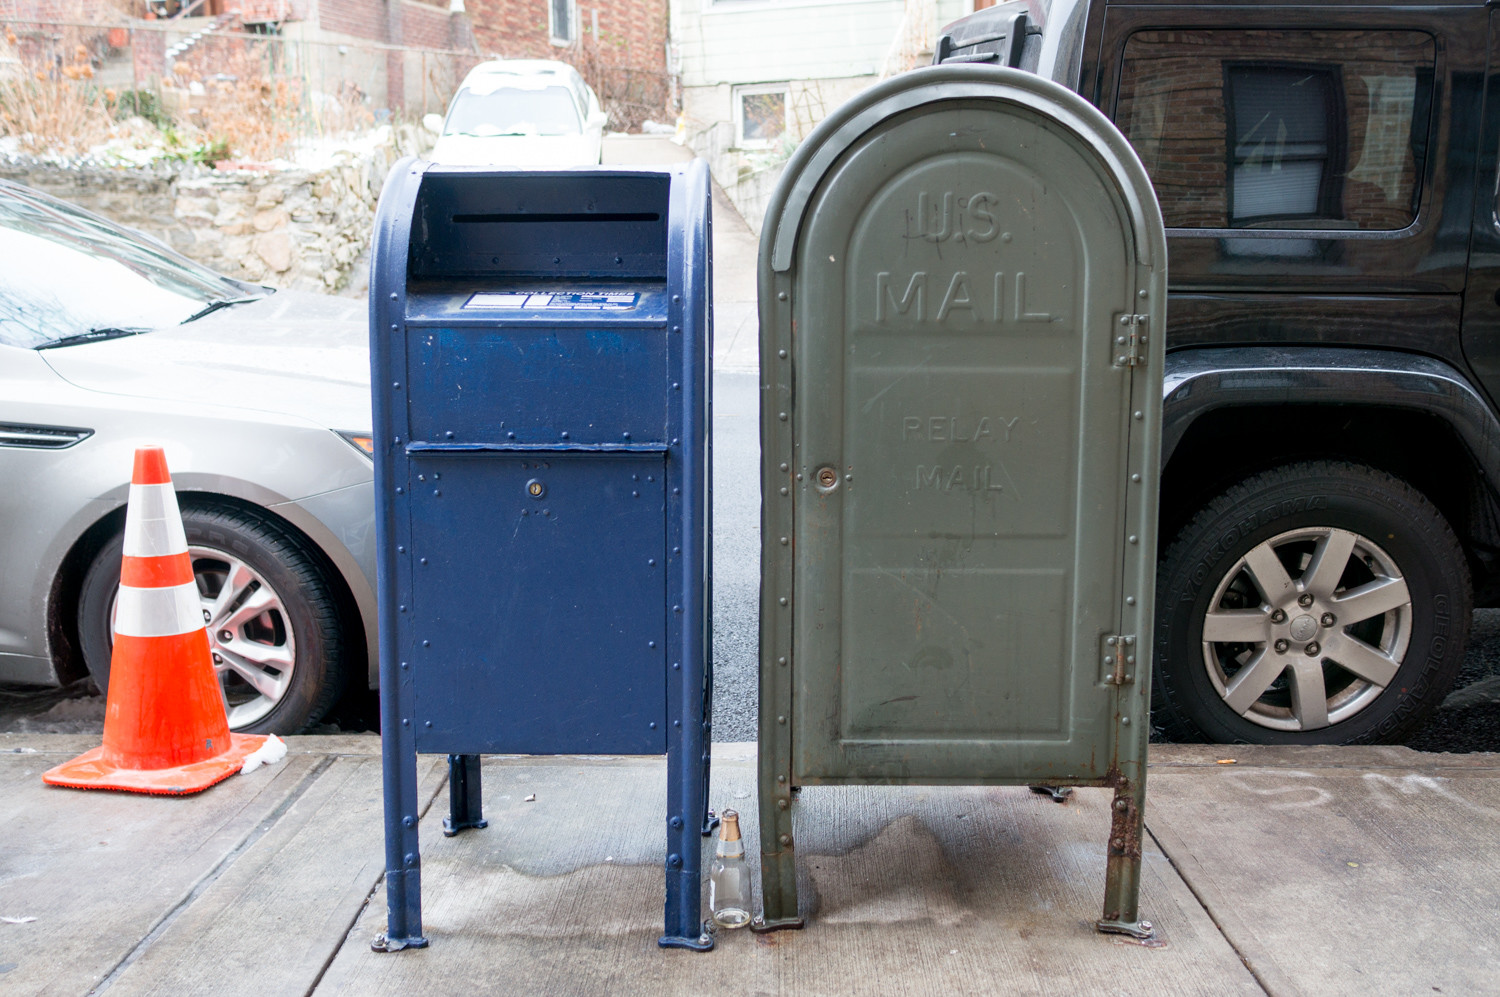 Marble Hill residents have complained about mailbox fishing, an old criminal tactic that involves using a sticky substance and a coat hanger or wire to steal mail from inside a mailbox.